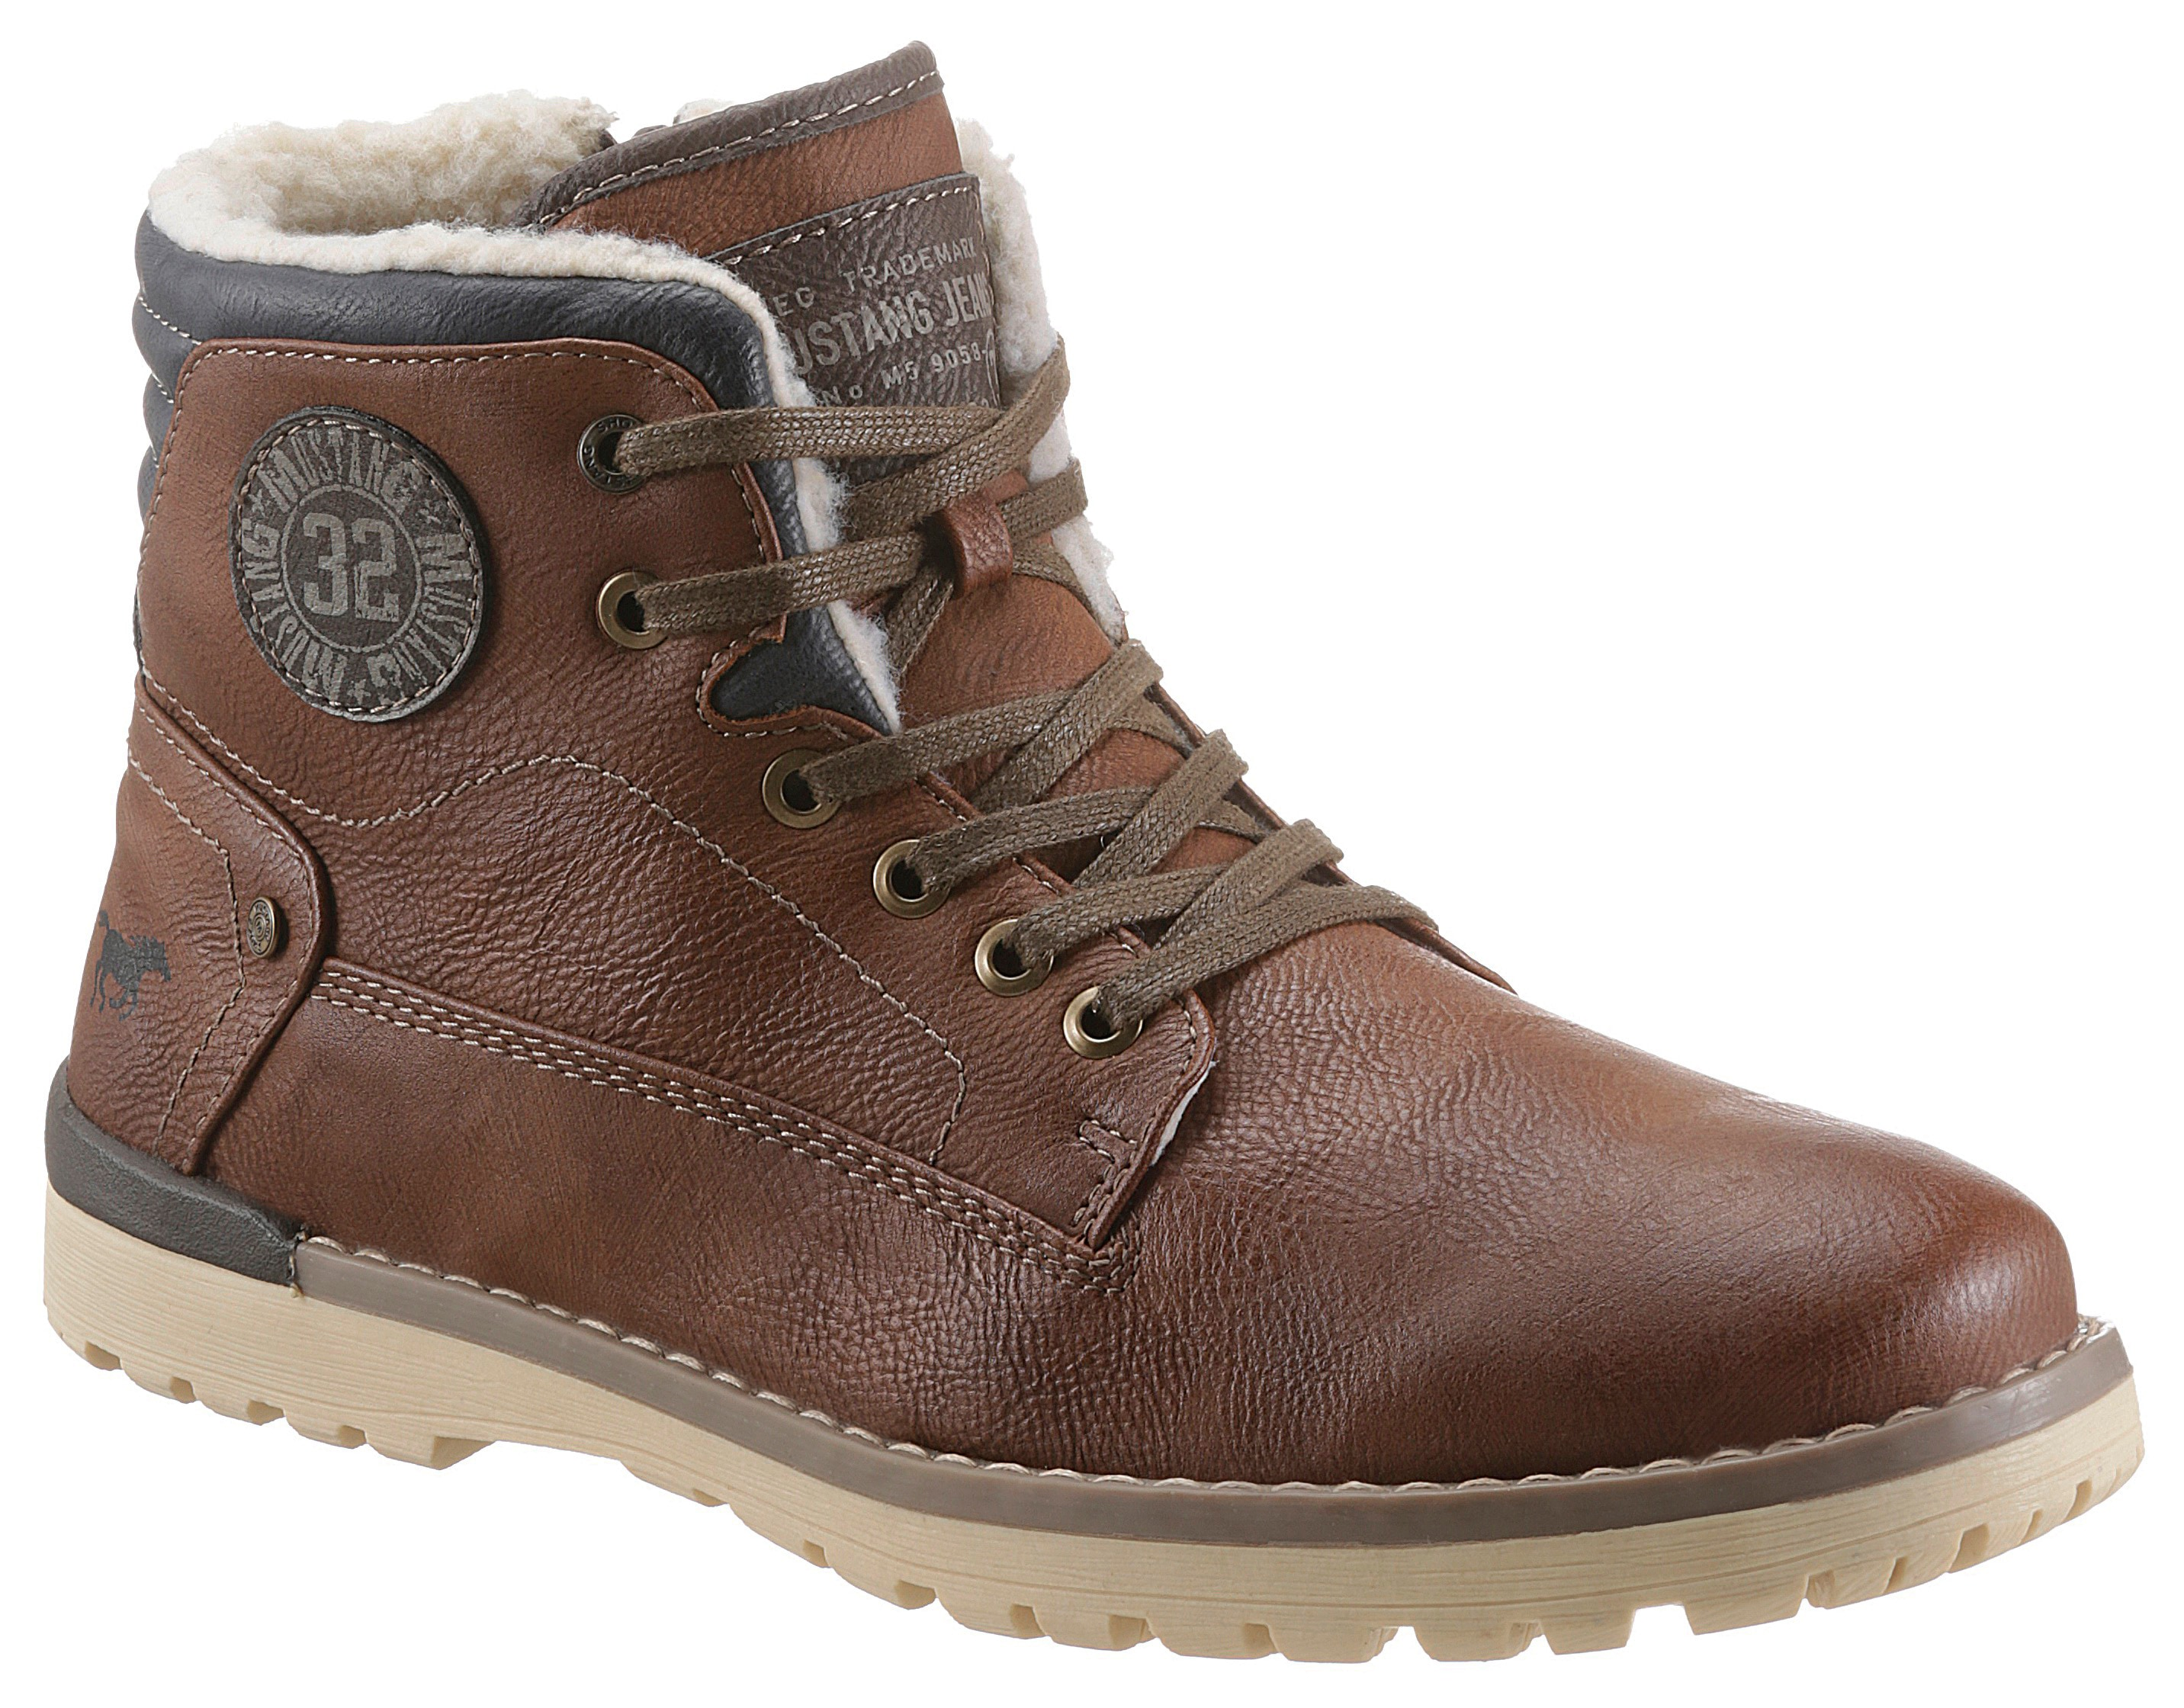 mustang shoes -  Schnürboots, mit Warmfutter